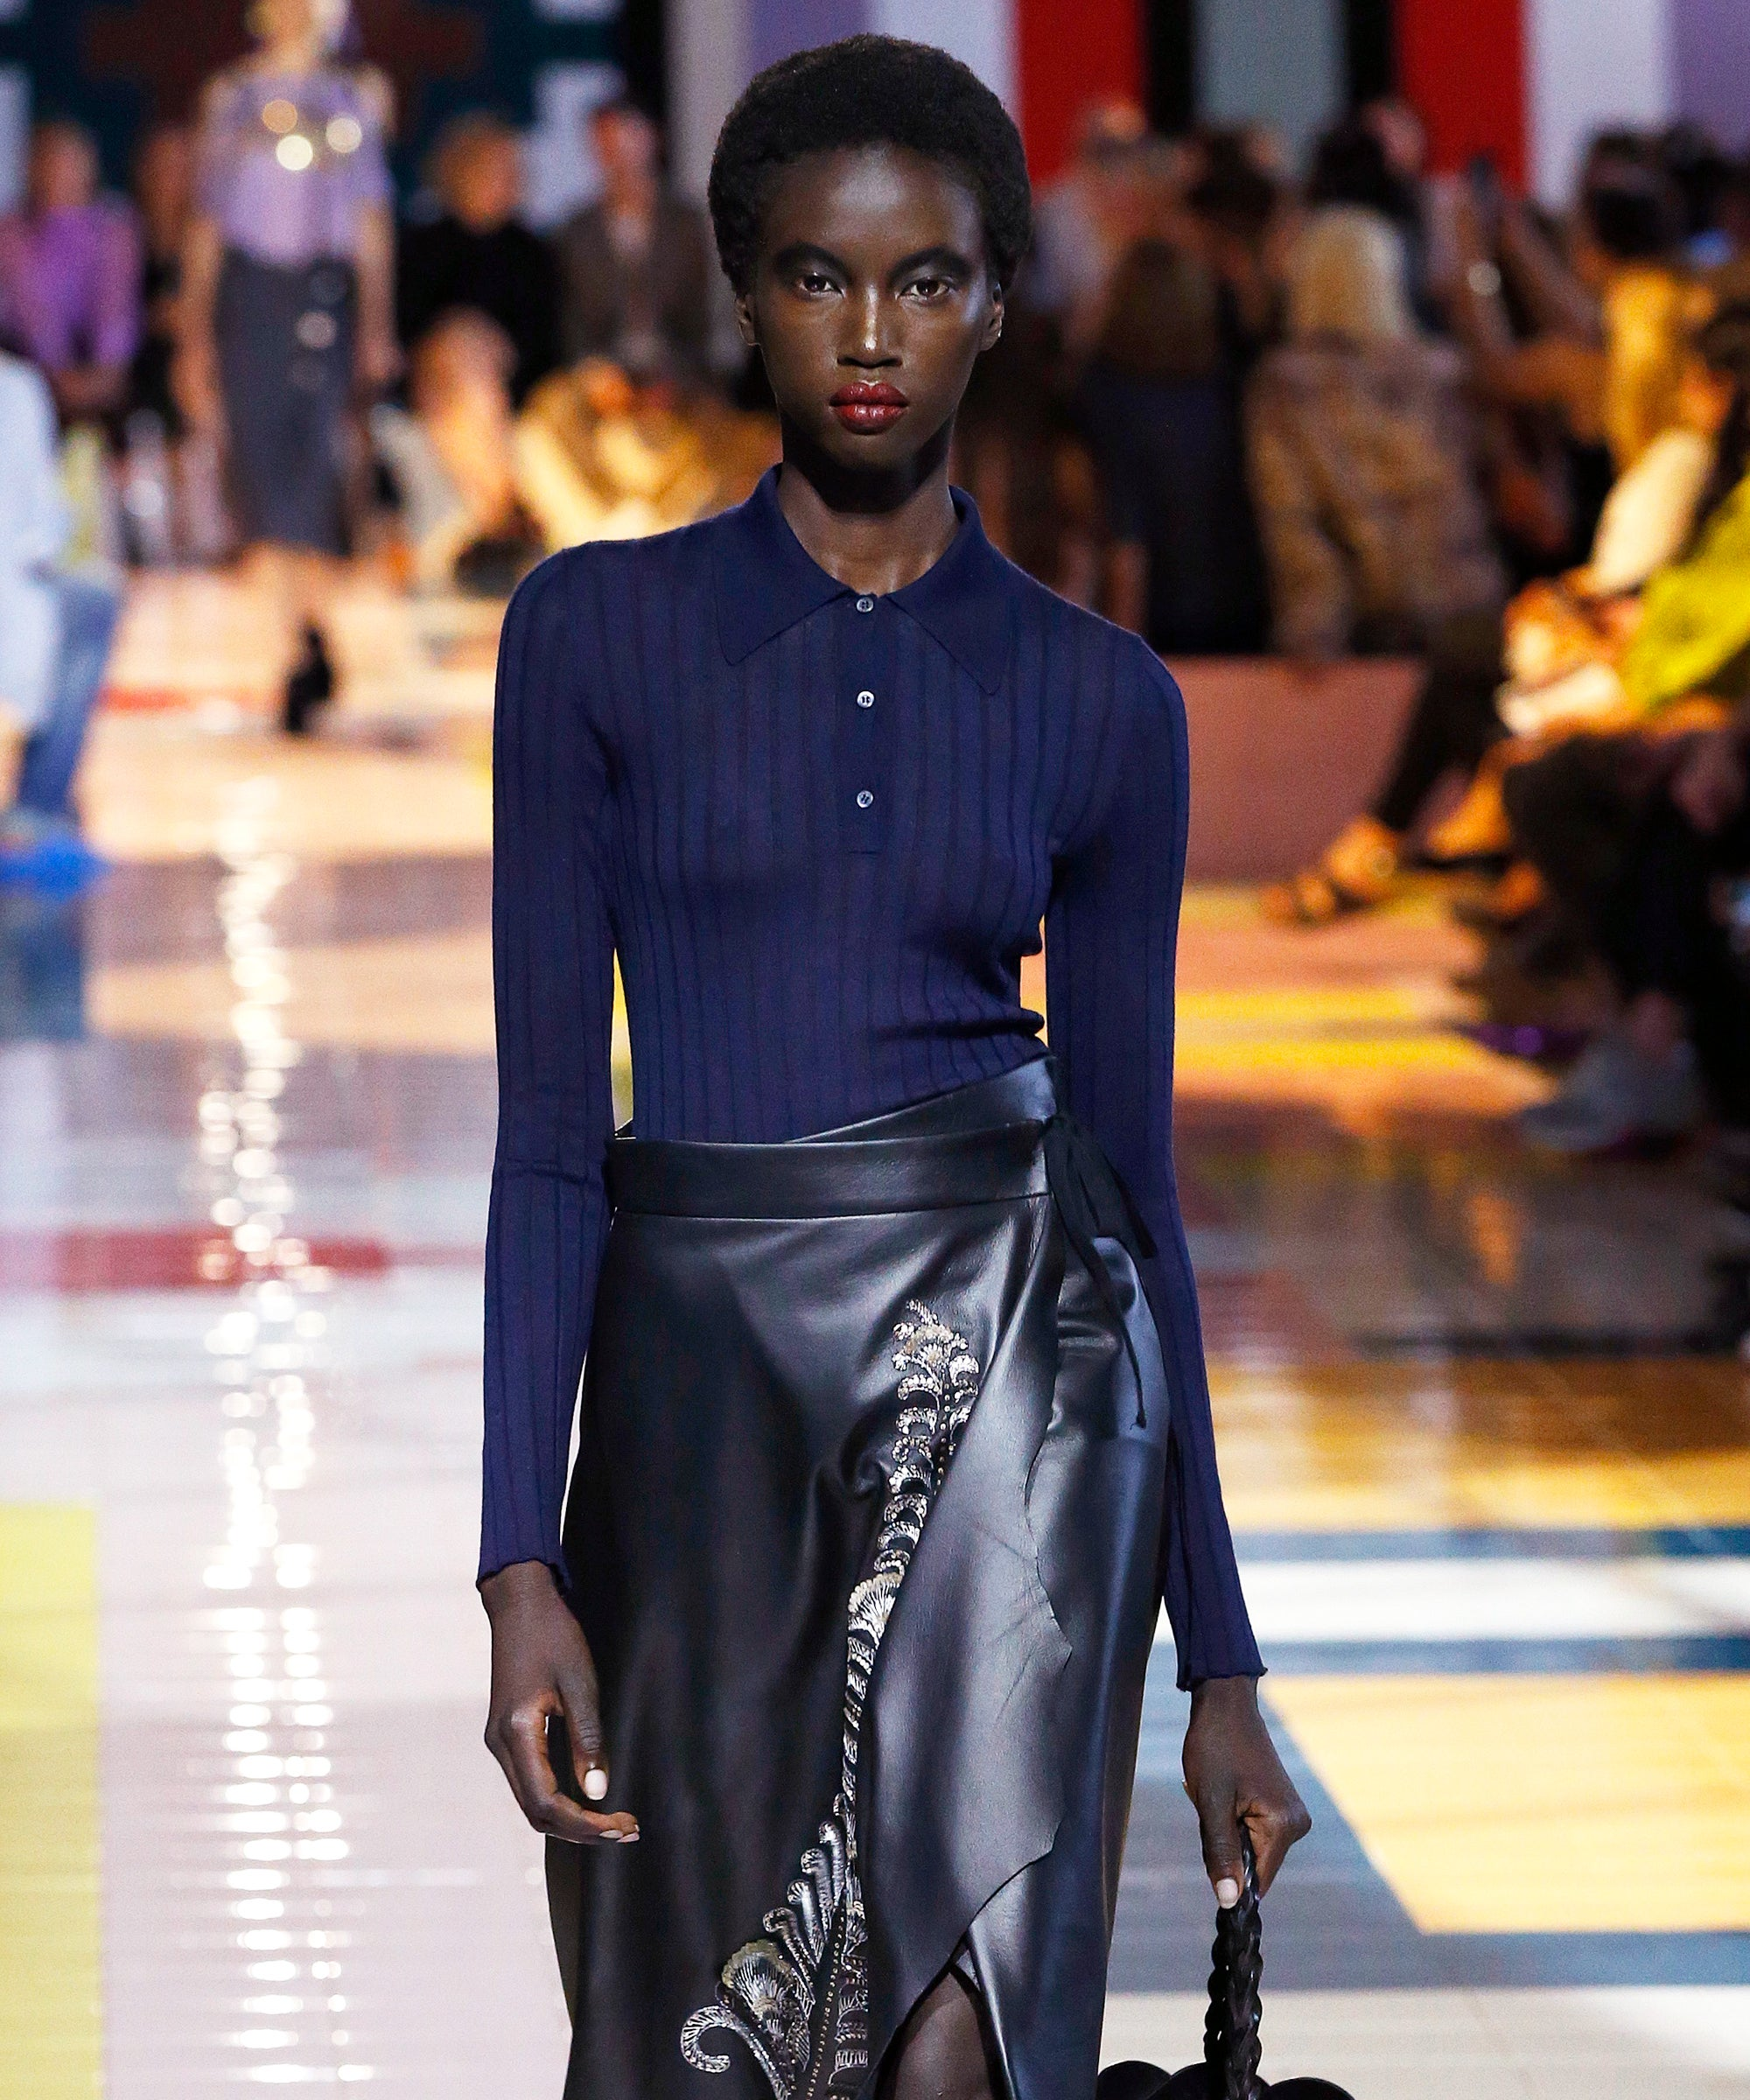 Prada Reminds Us That Personal Style Is, Well, Personal